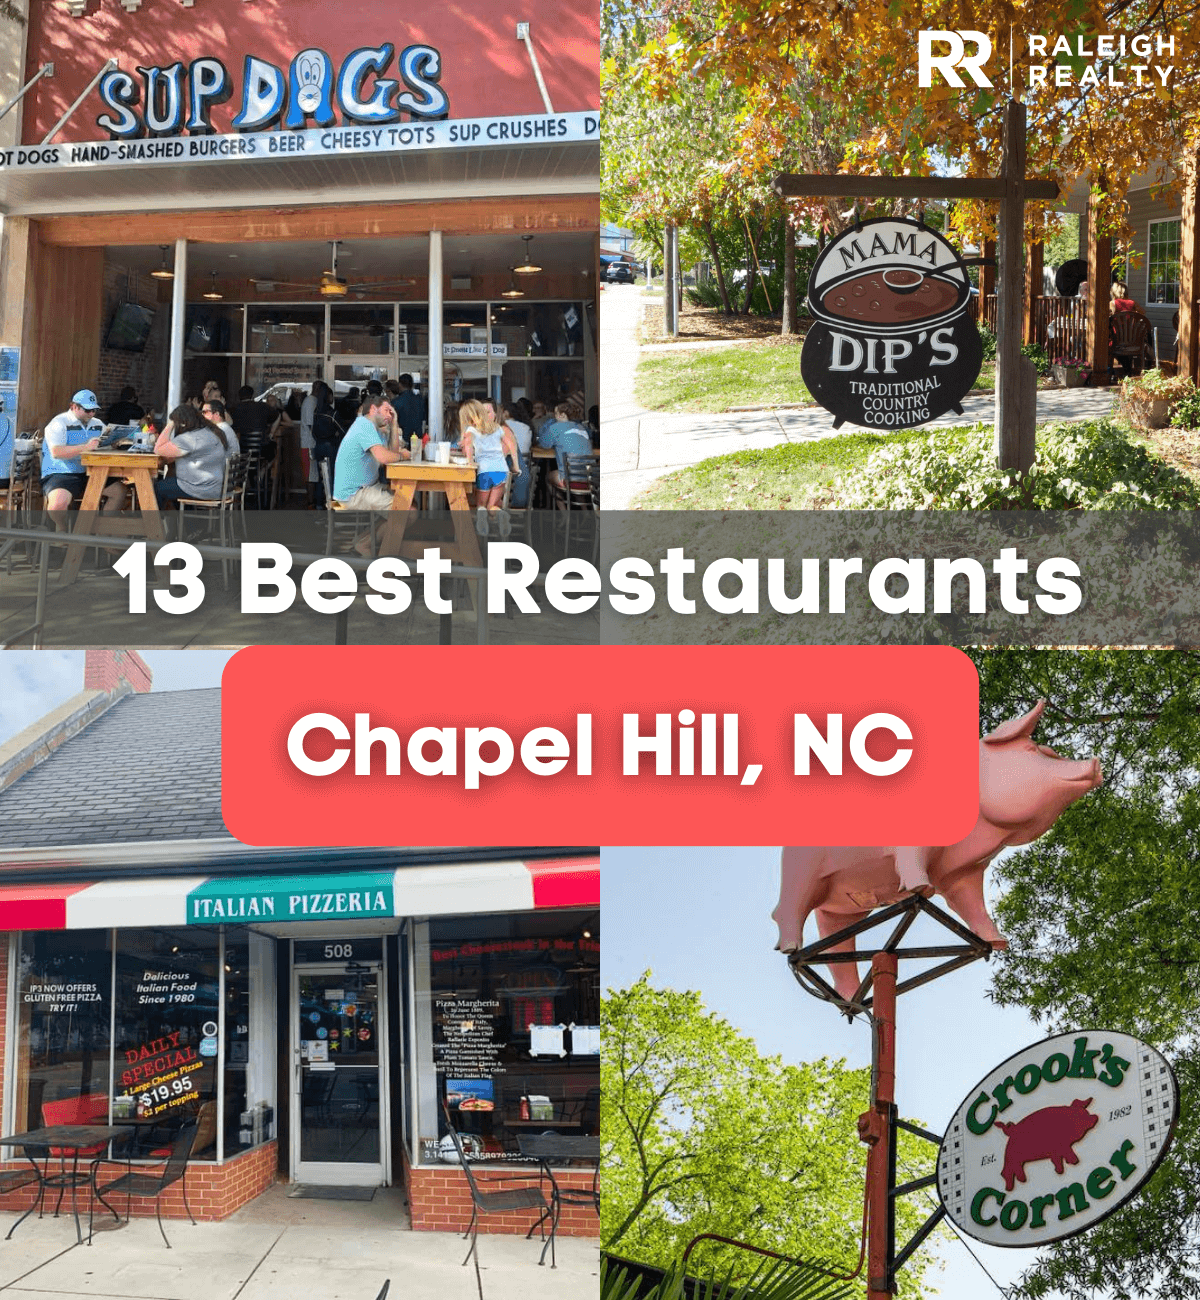 Best Restaurants in Chapel Hill, NC - Local, Family, Italian, and more!